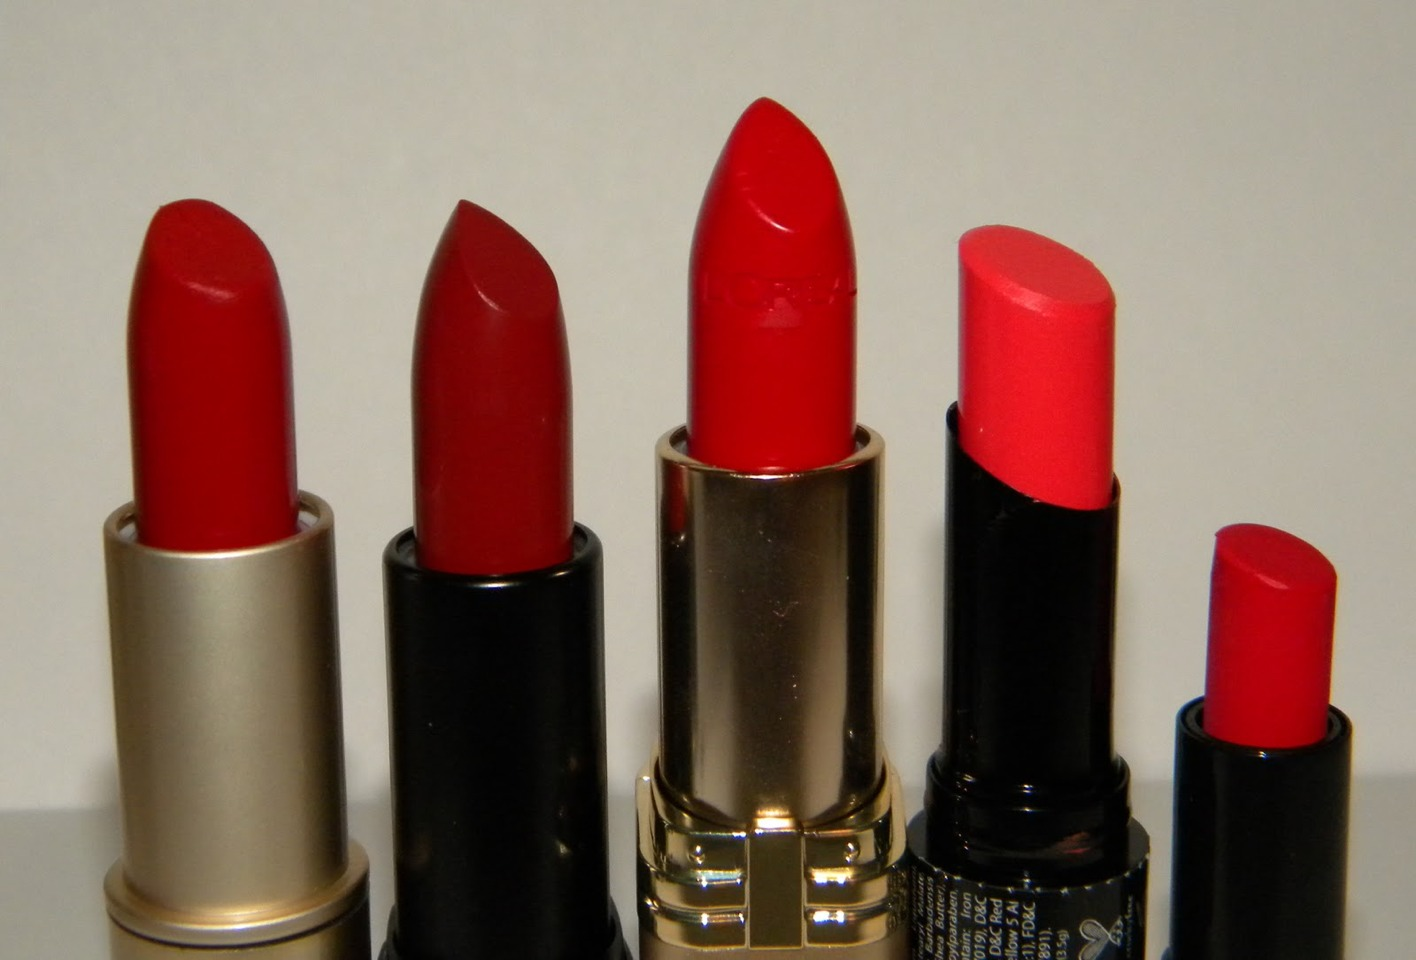 Searching for the perfect lipstick? Fear not! I have included five red lipsticks in this tip floating around in the makeup world, both drugstore and high end!